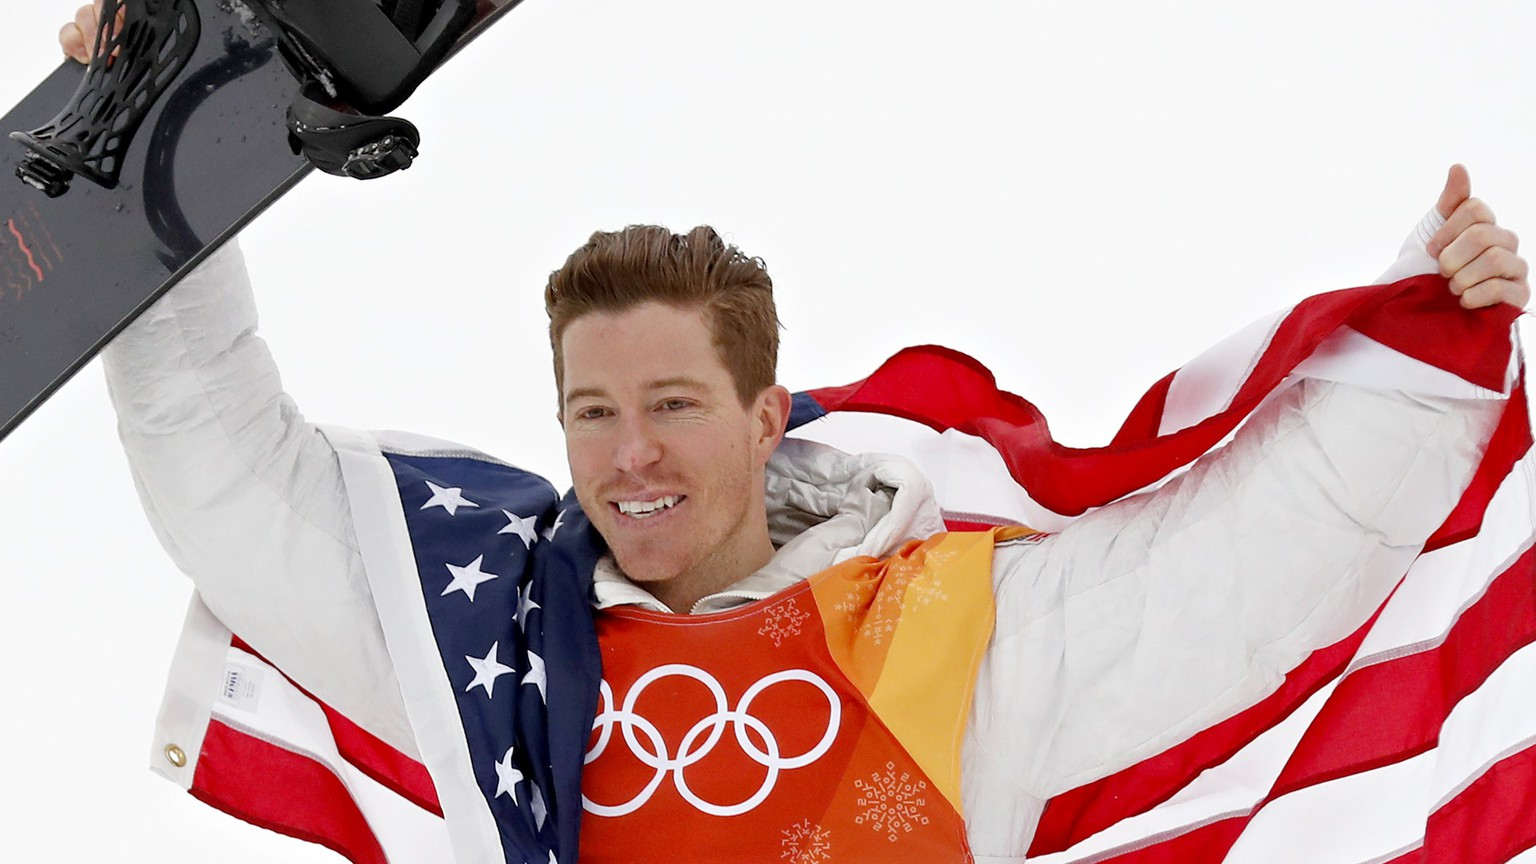 epaselect epa06523019 Gold medal winner Shaun White of the USA celebrates with the US flag during the venue ceremony after the Men's Snowboard Halfpipe Final Run at the Bokwang Phoenix Park during the PyeongChang 2018 Olympic Games, South Korea, 14 February 2018.  EPA/SERGEI ILNITSKY